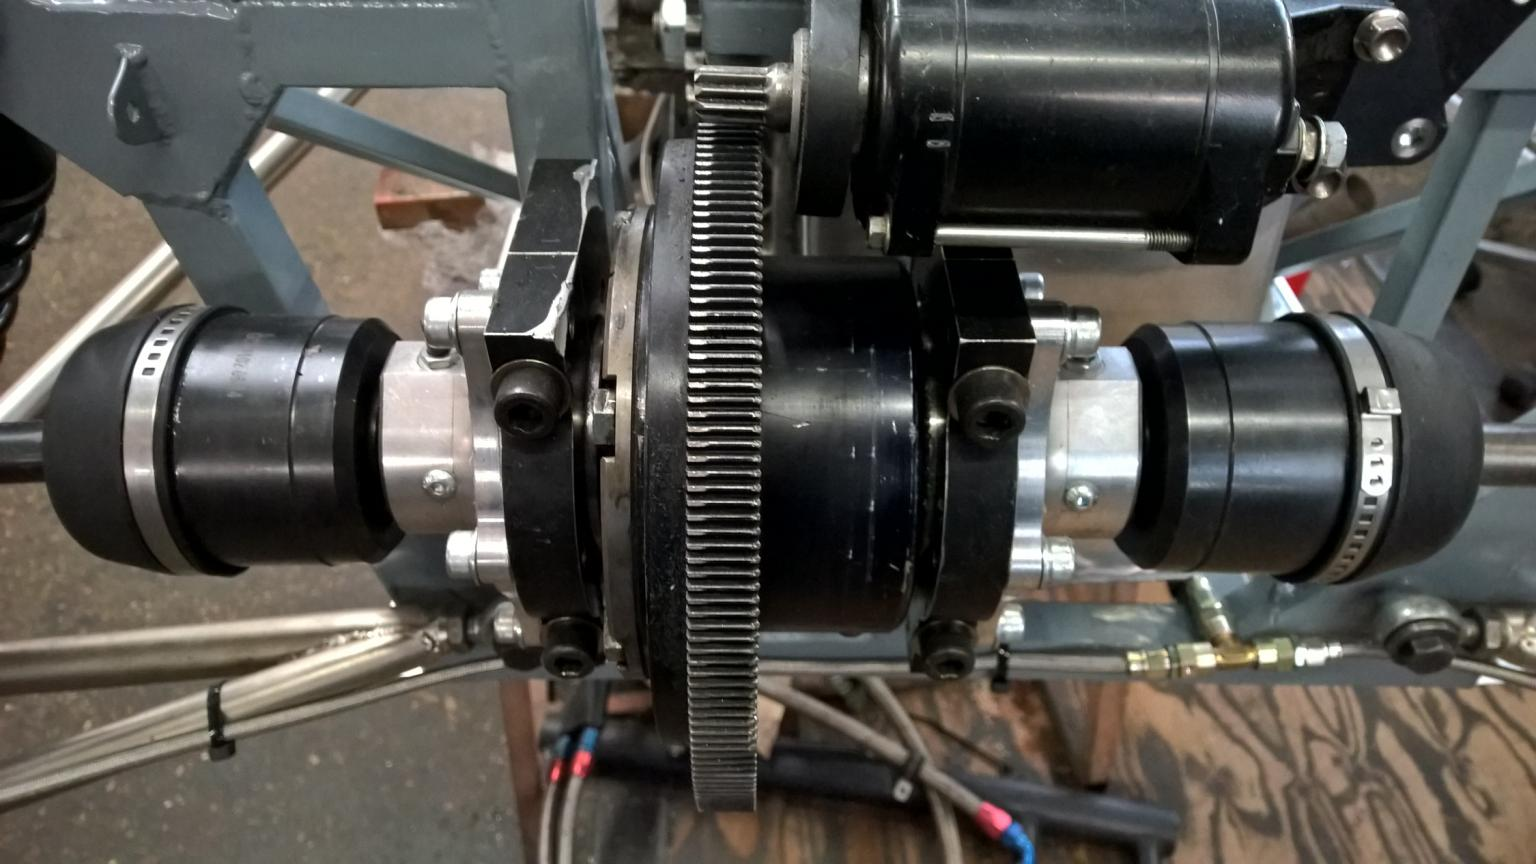 Jedi differential with two CV's each equipped with Lee Spring comical compression spring